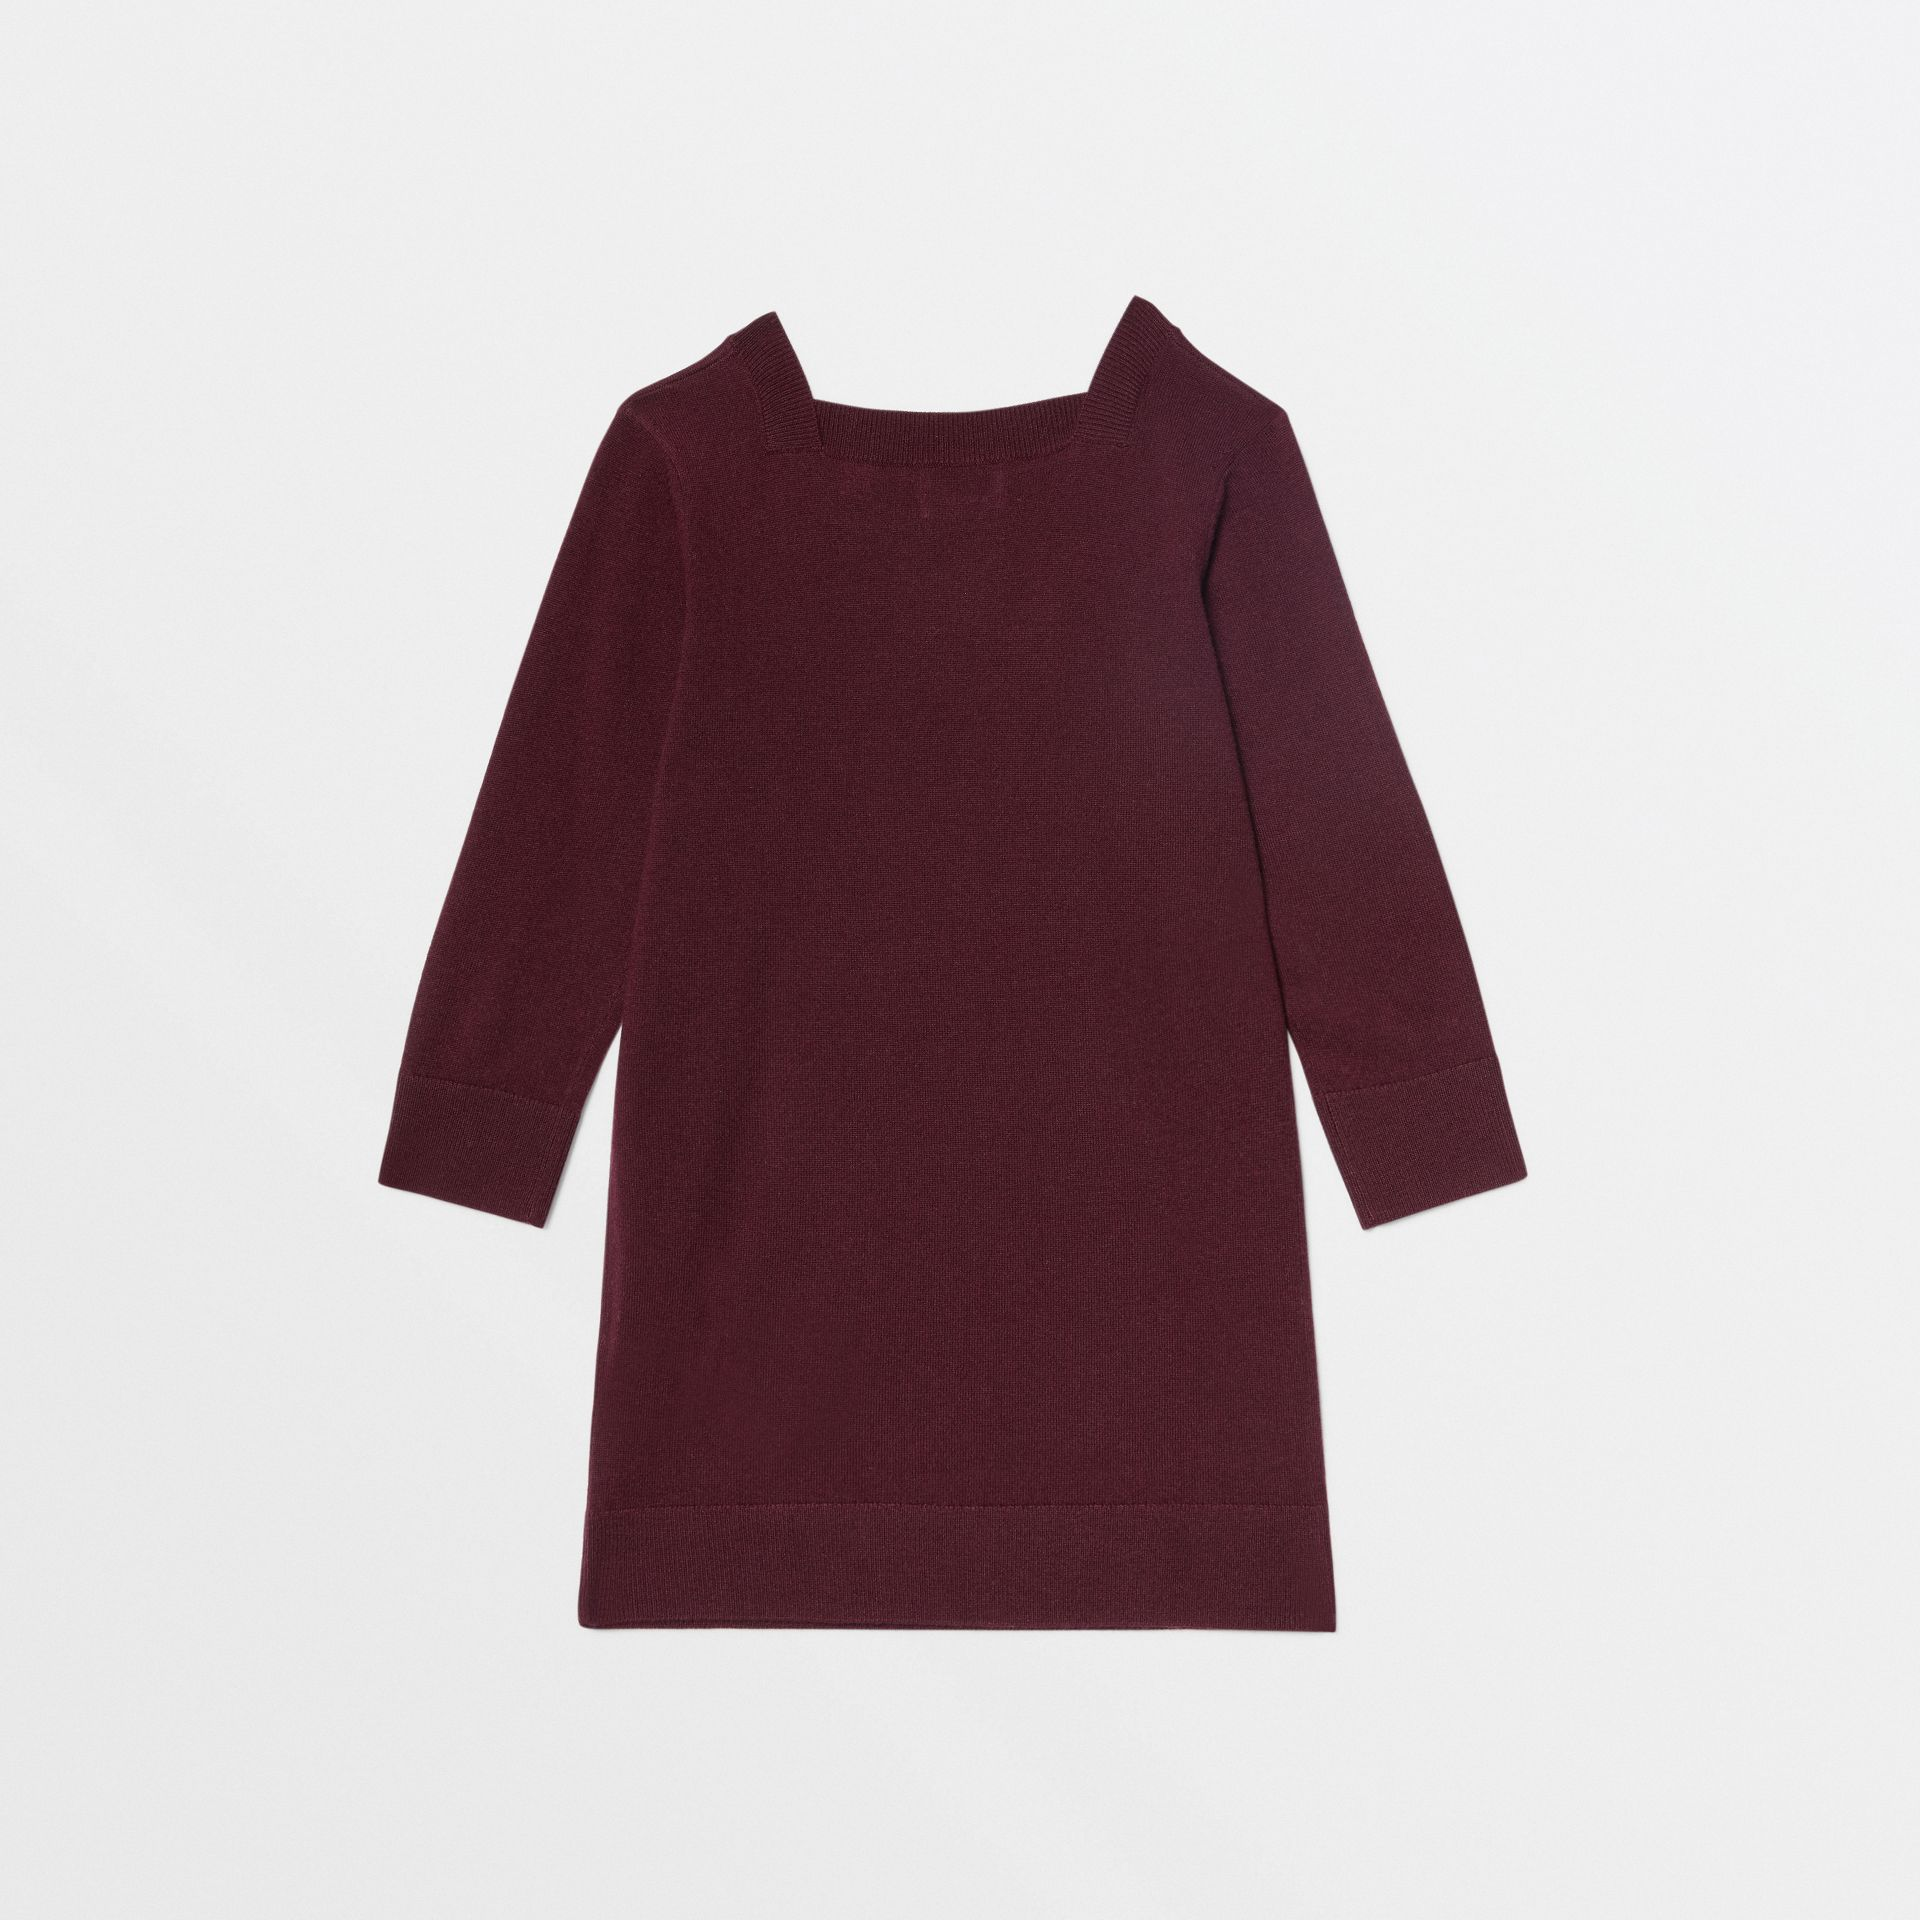 Monogram Motif Cashmere Sweater Dress in Burgundy | Burberry United Kingdom - gallery image 3